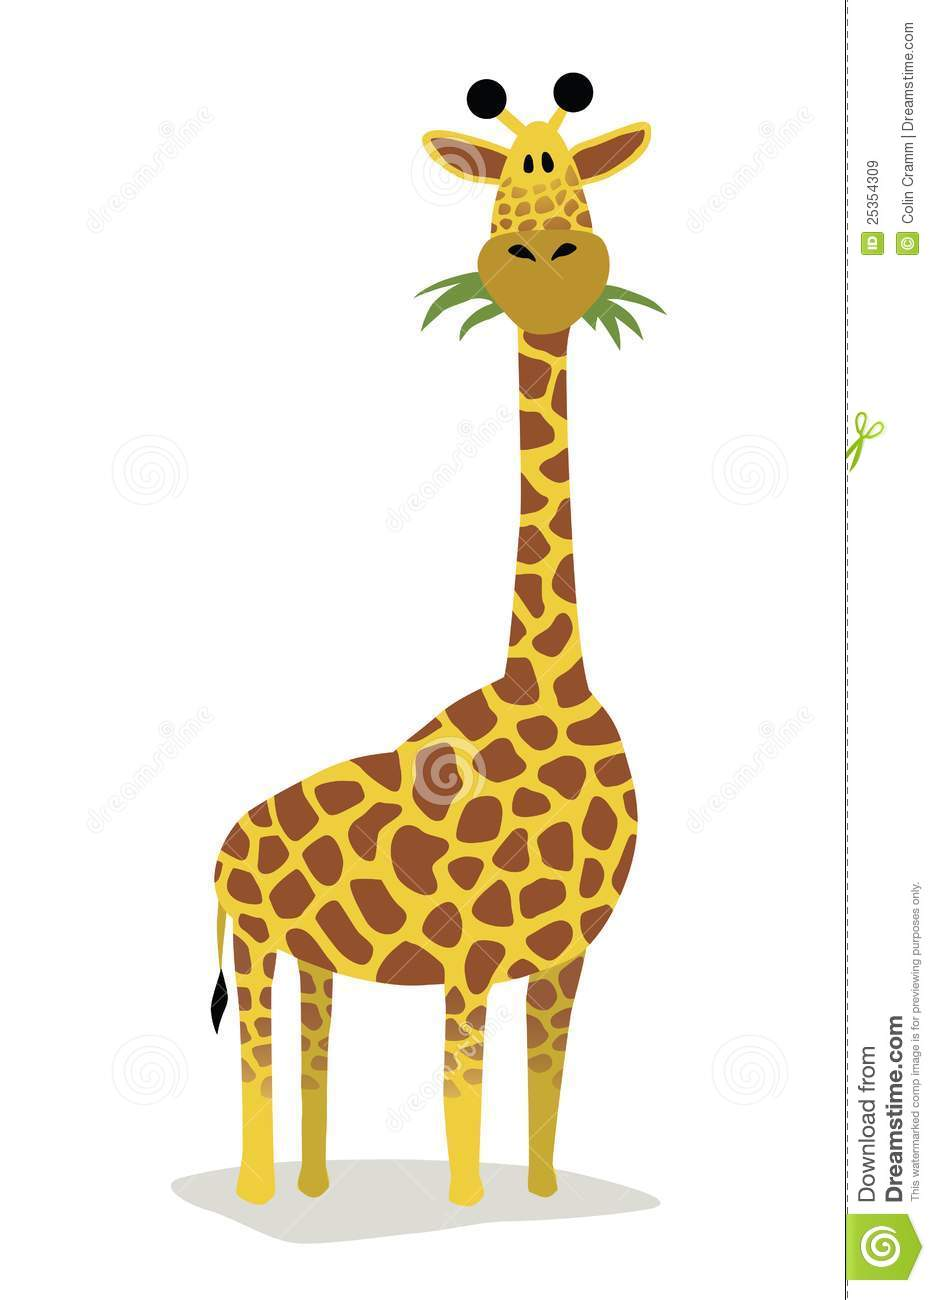 Cartoon Giraffe Royalty Free Stock Images - Image: 25354309